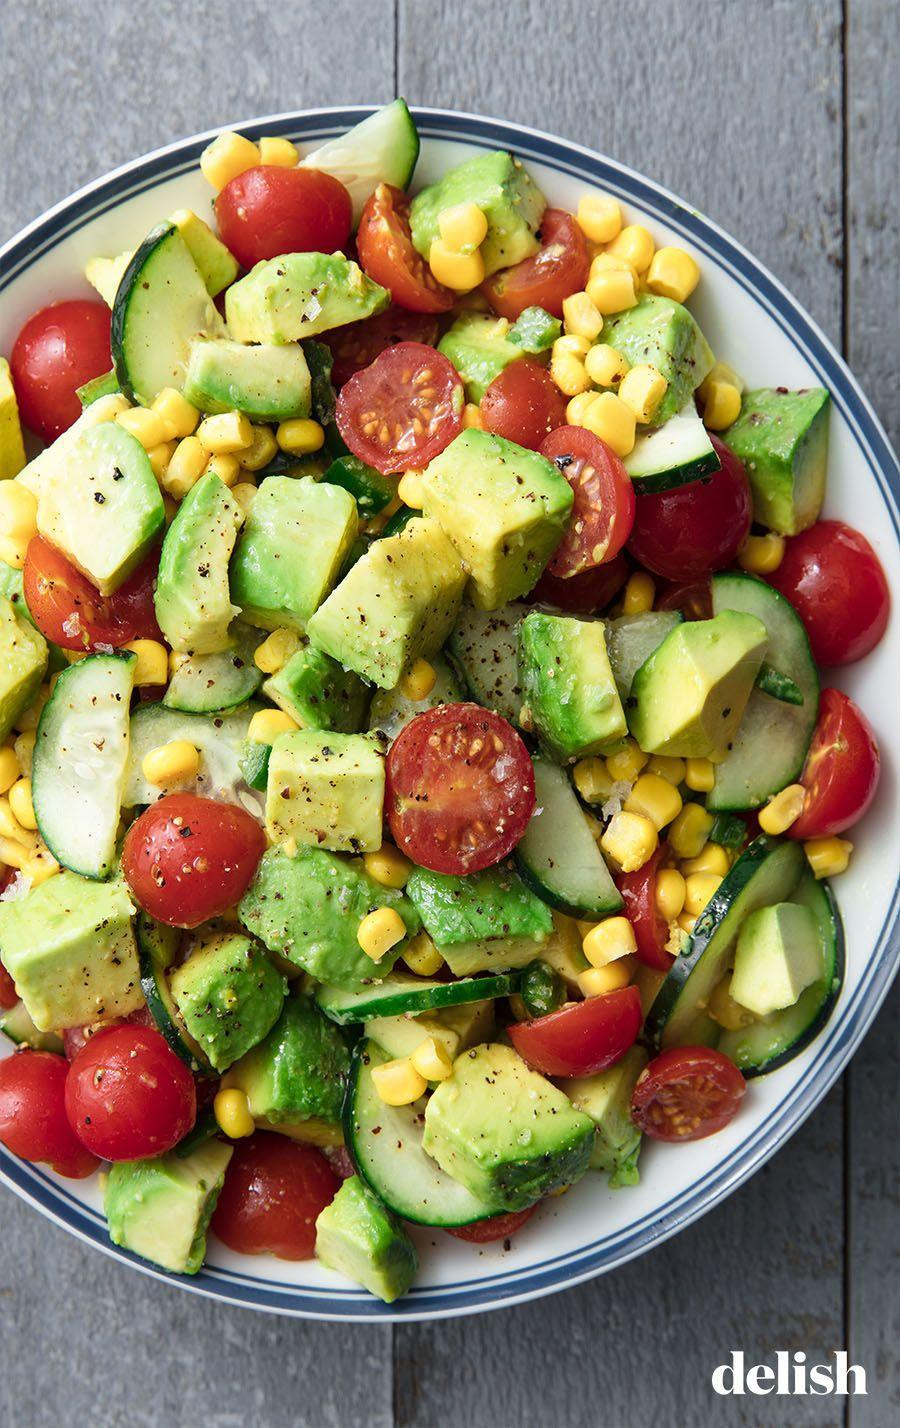 """<p>Serve it in plastic shot glass cups if you wanna feel fancy!</p><p>Get the recipe from <a href=""""https://www.delish.com/cooking/recipe-ideas/a19872947/avocado-tomato-salad-recipe/"""" rel=""""nofollow noopener"""" target=""""_blank"""" data-ylk=""""slk:Delish"""" class=""""link rapid-noclick-resp"""">Delish</a>. </p>"""